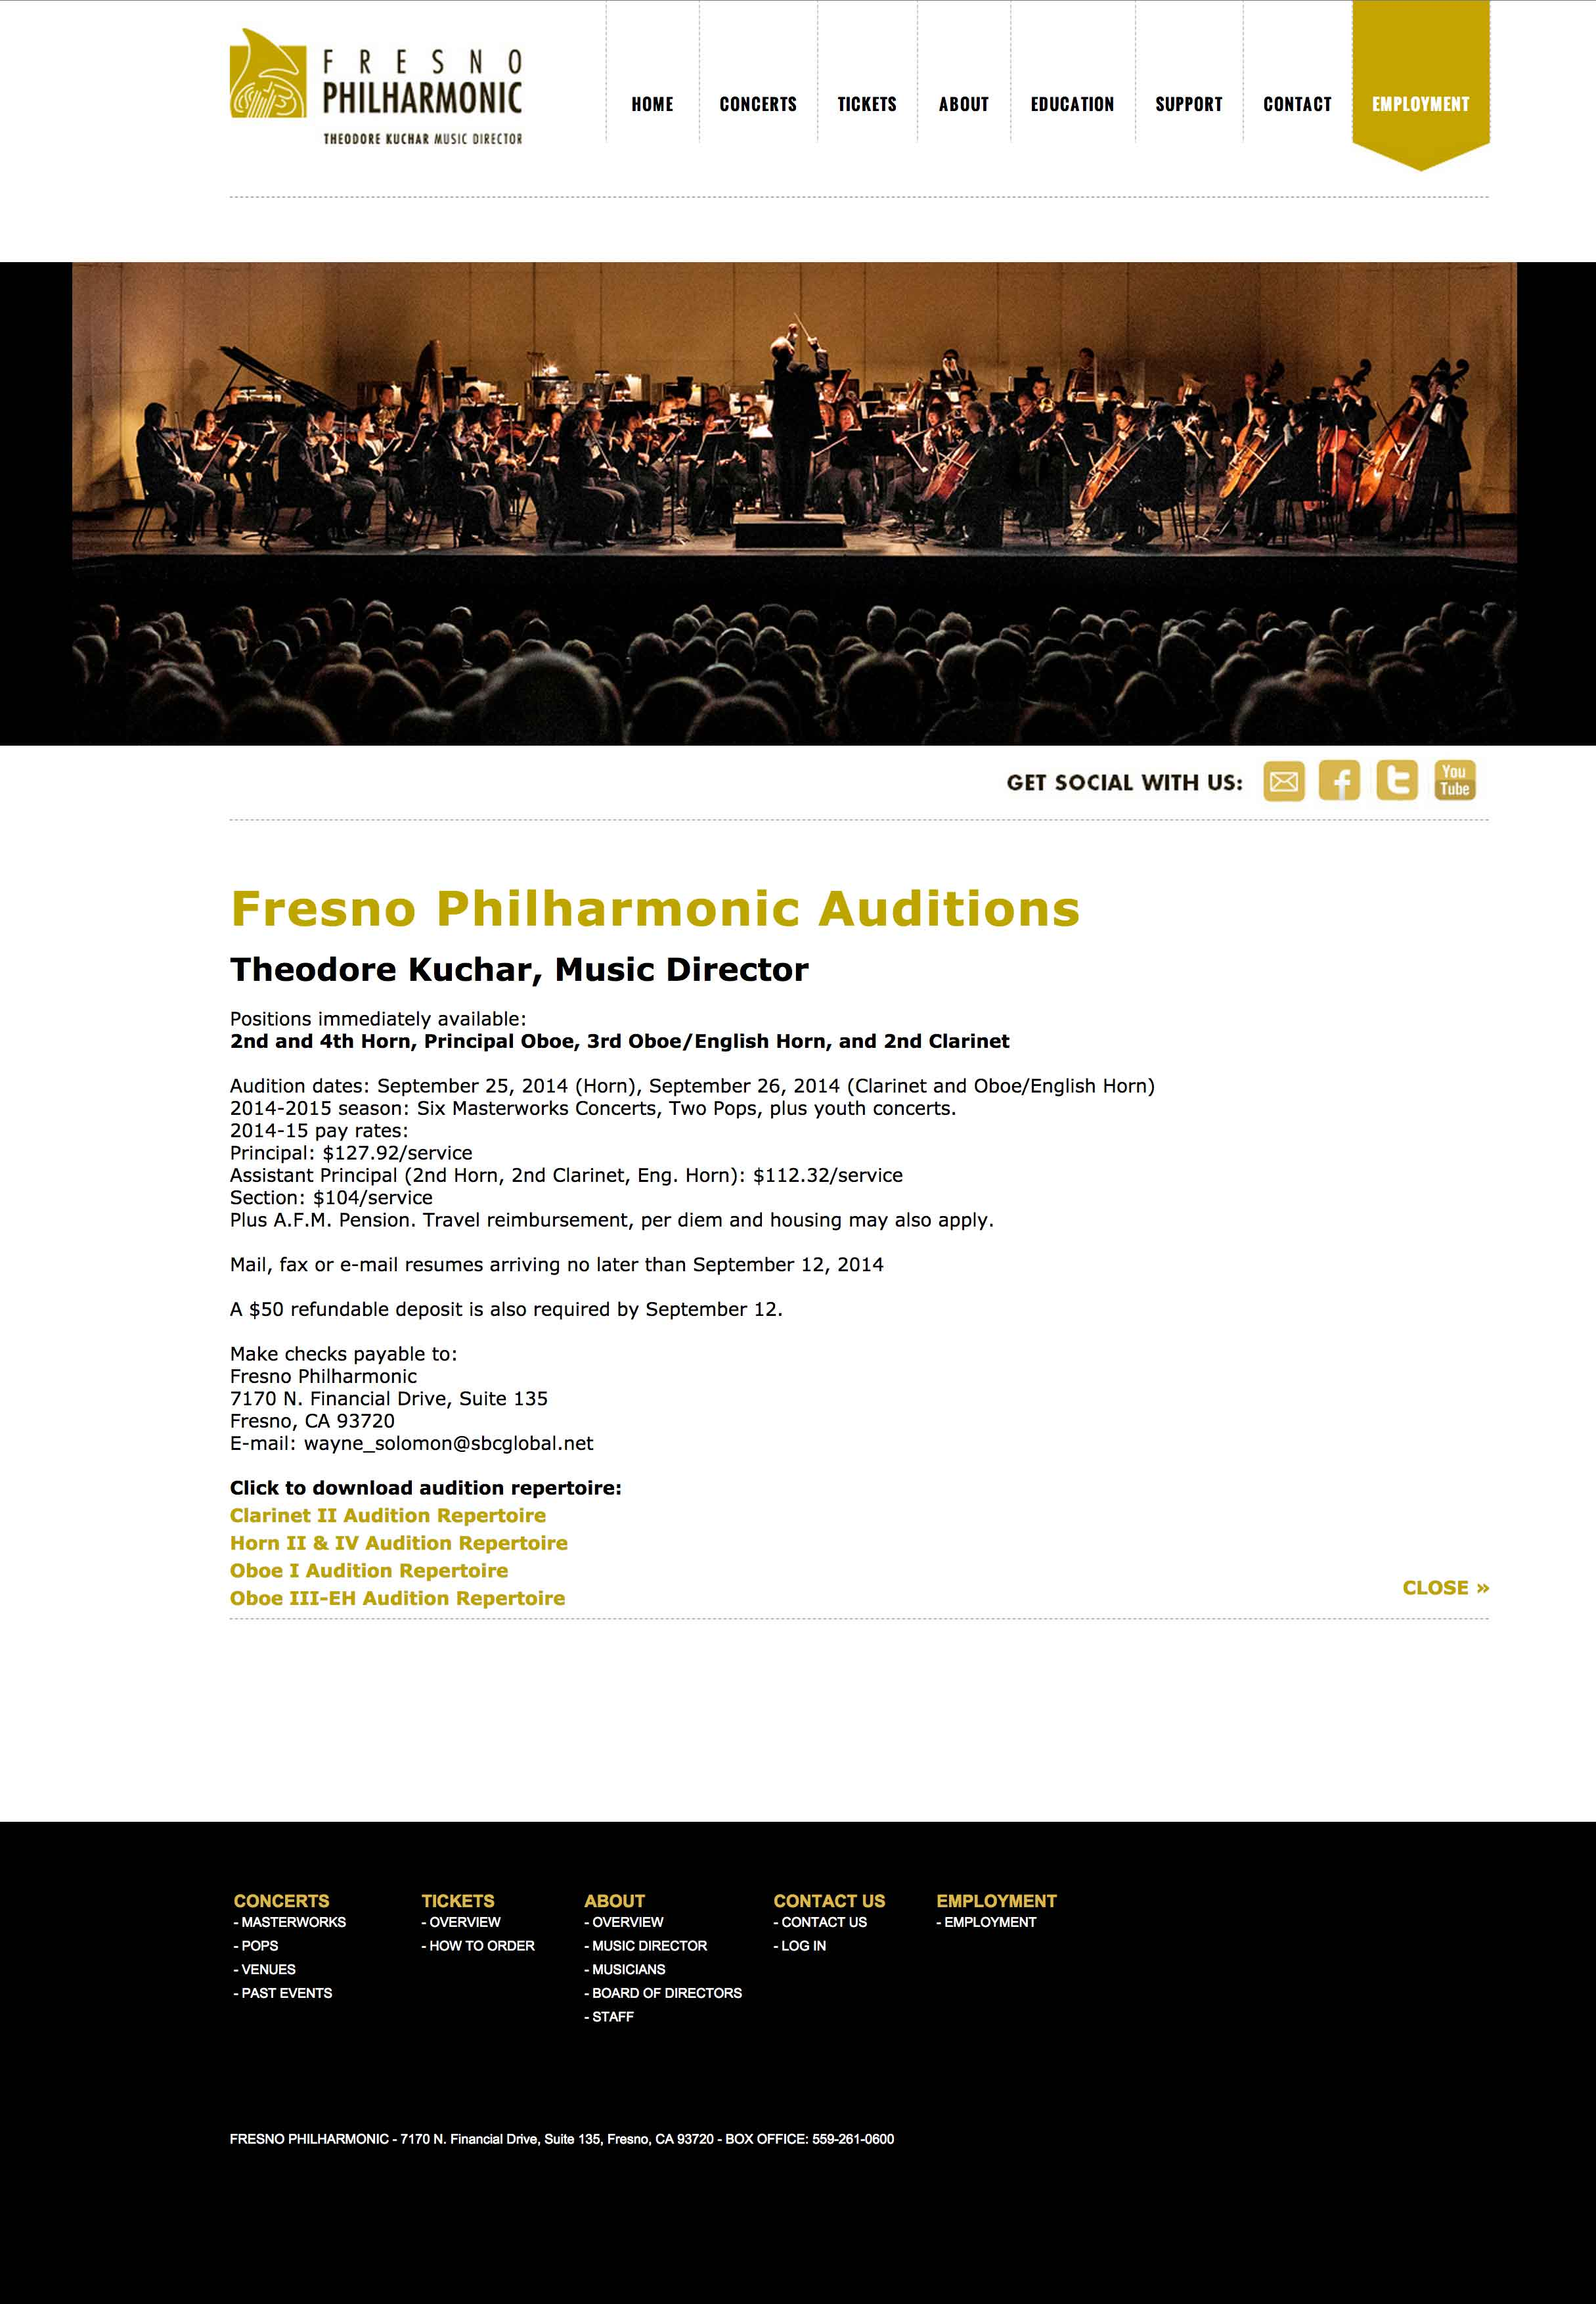 Screen shot of the Fresno Philharmonic web site by Lee Powers.